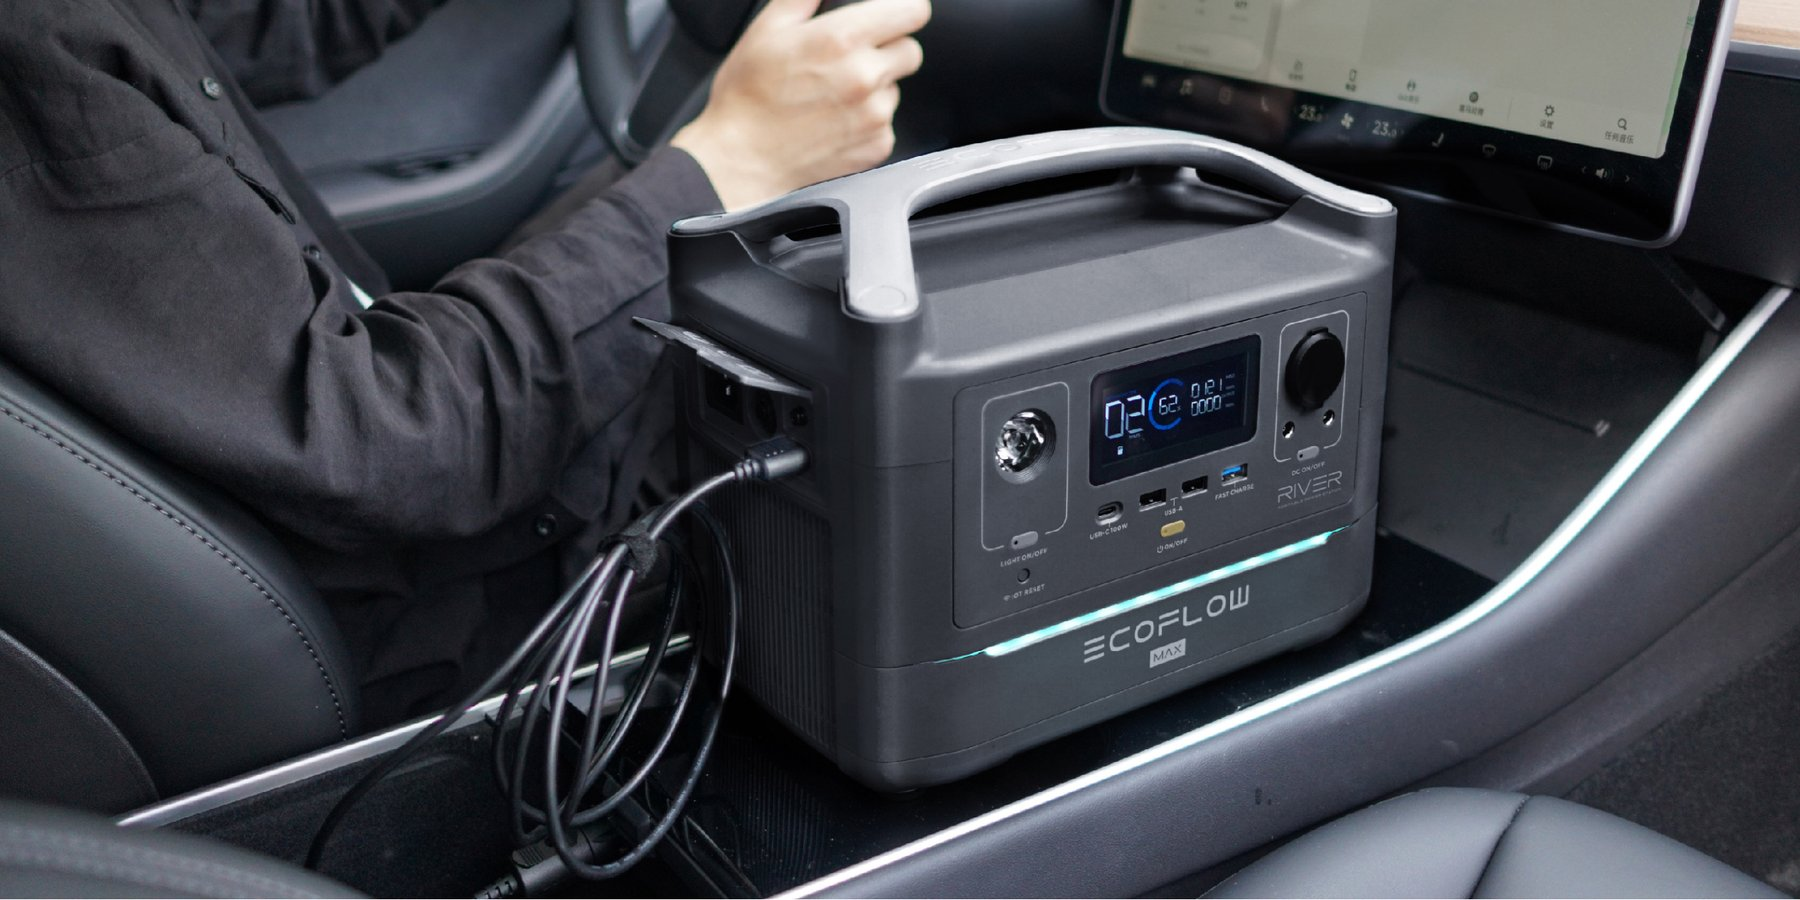 ecoflow river max 600W recharge allume cigare voiture camping-car-van